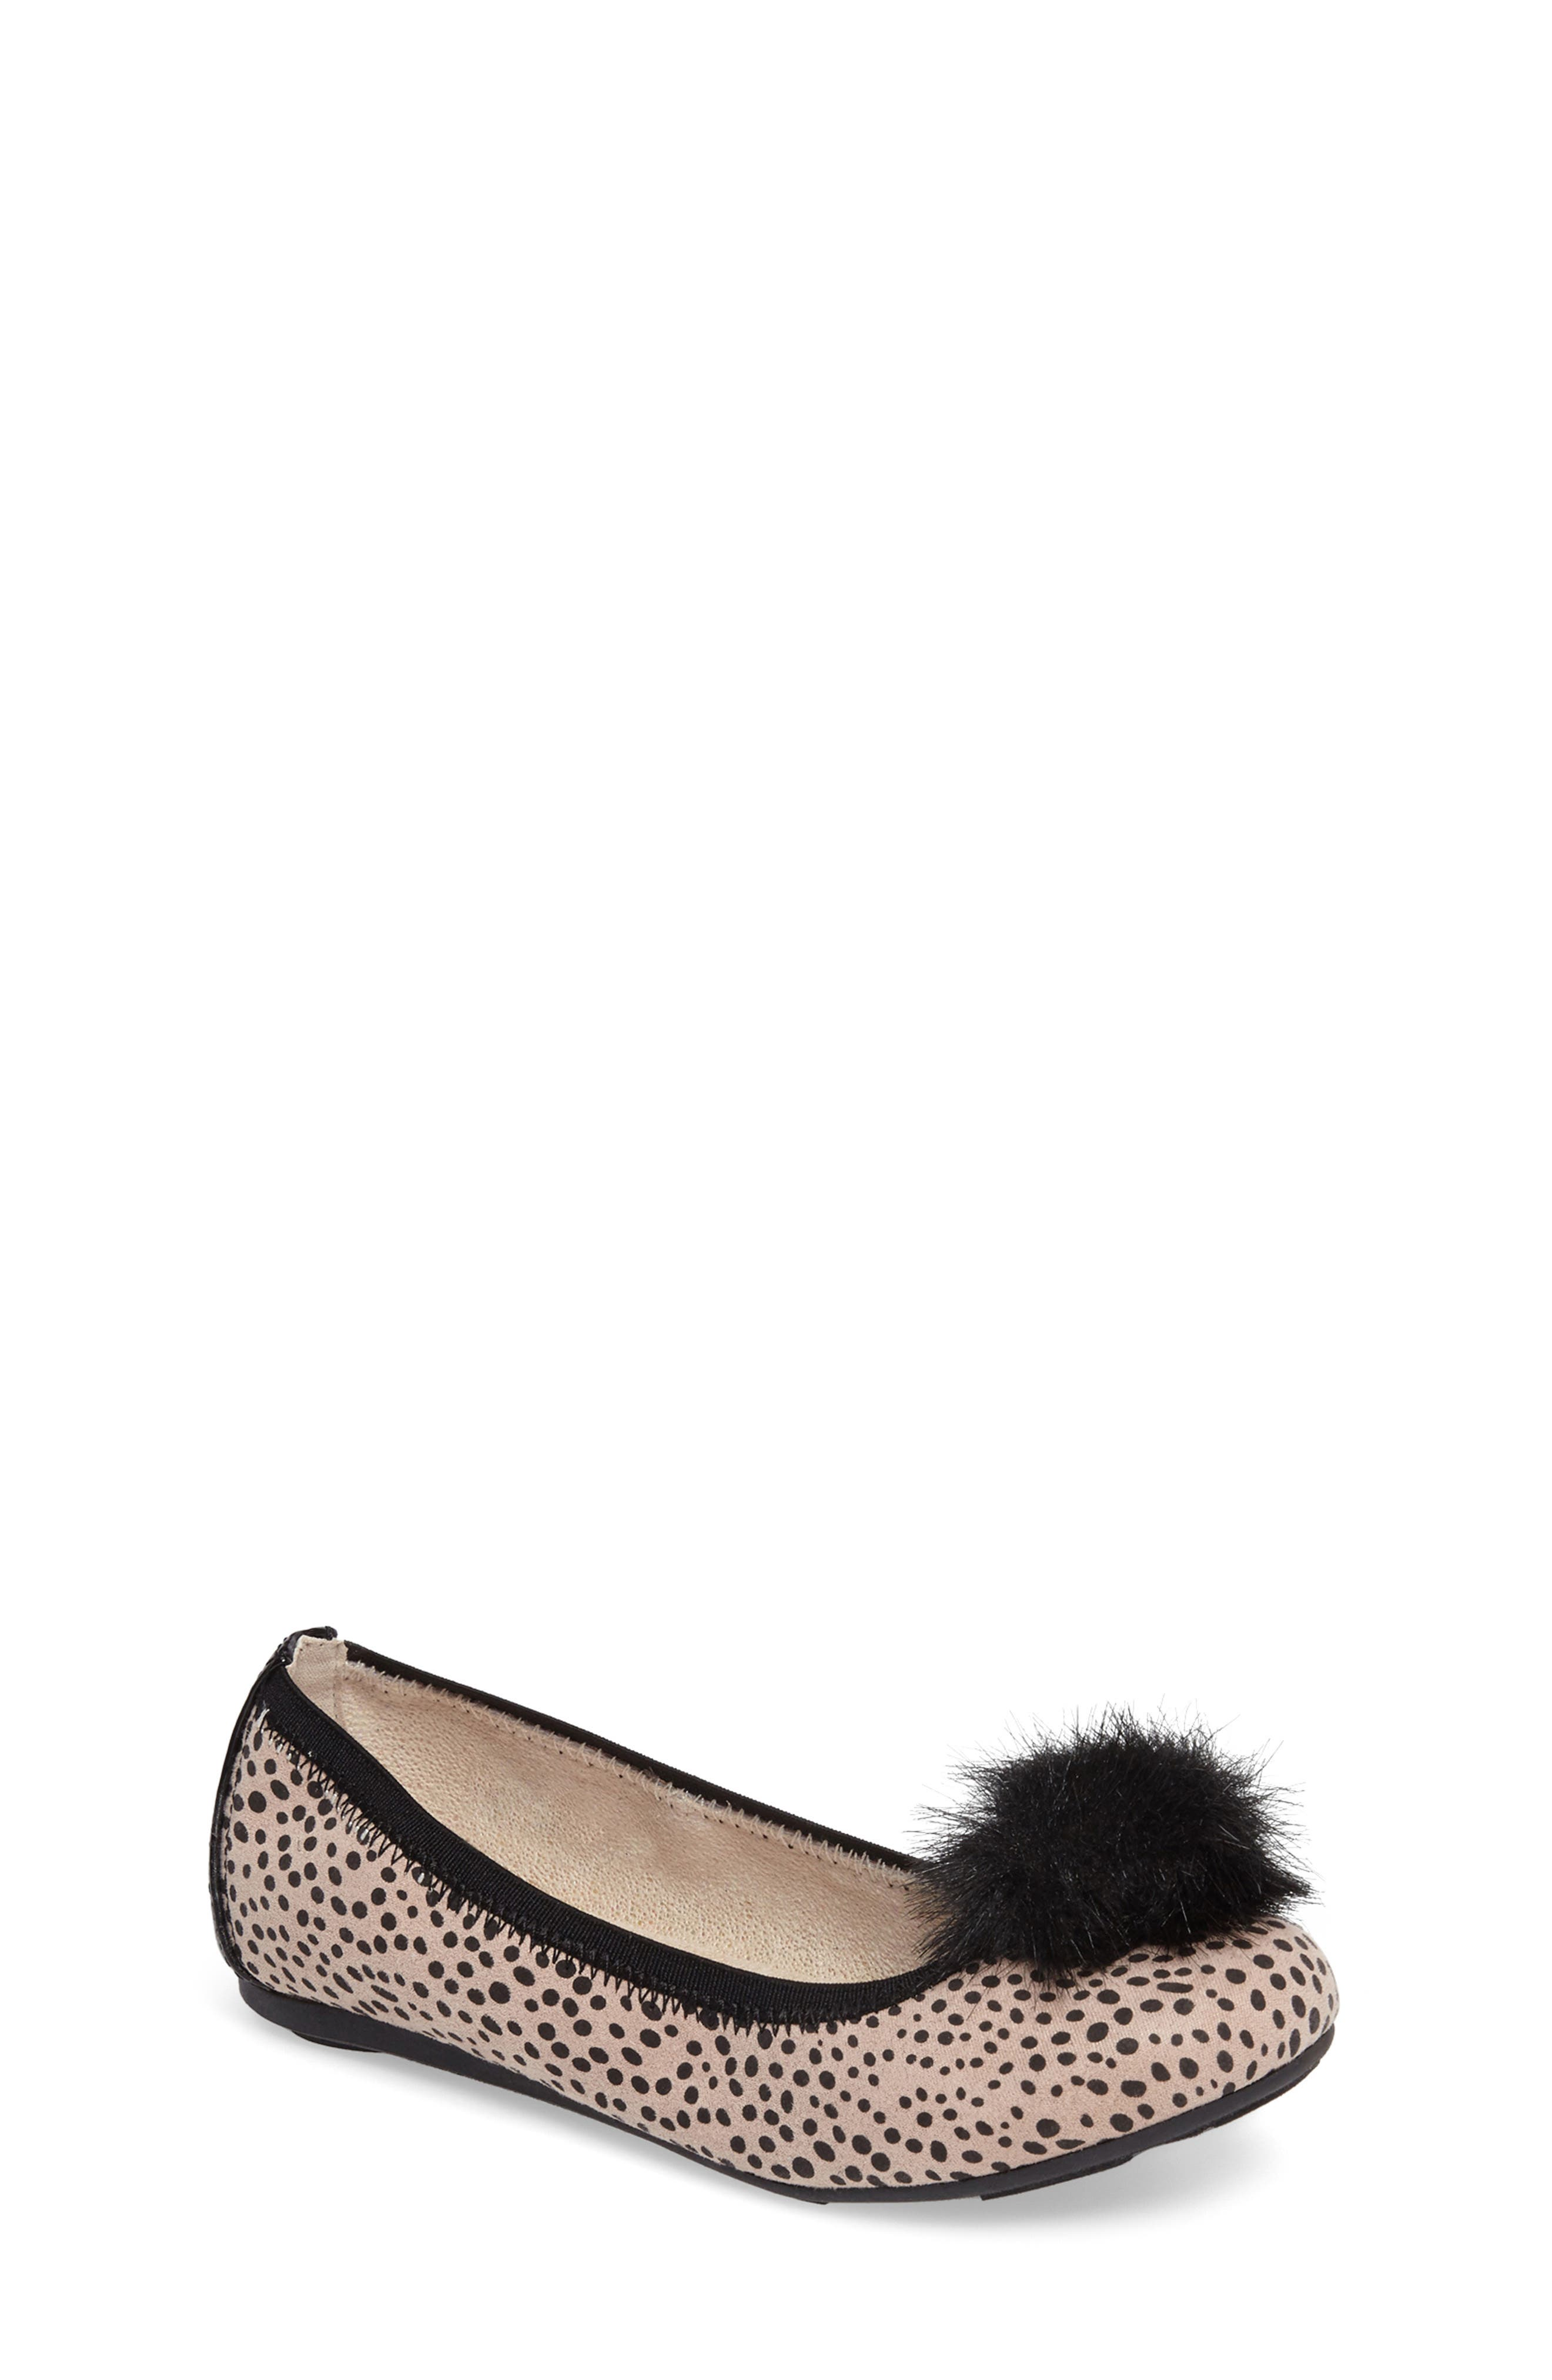 Fannie Cheetah Faux Fur Pom Flat,                             Main thumbnail 1, color,                             012